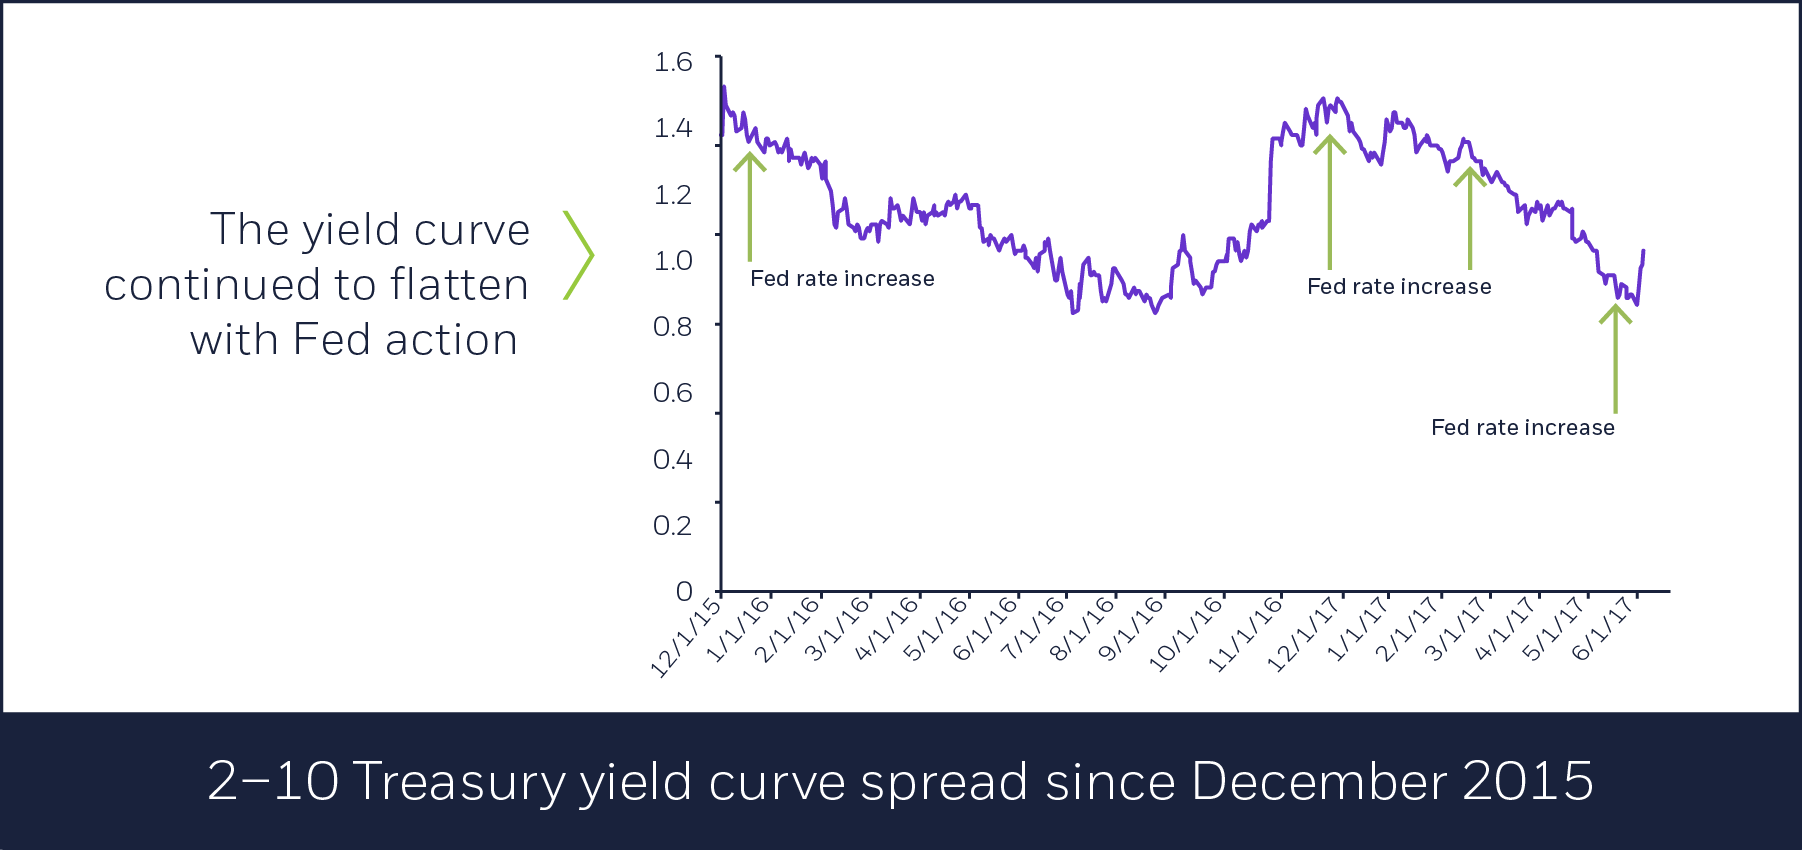 2-10 Treasury yield curve spread since December 2015